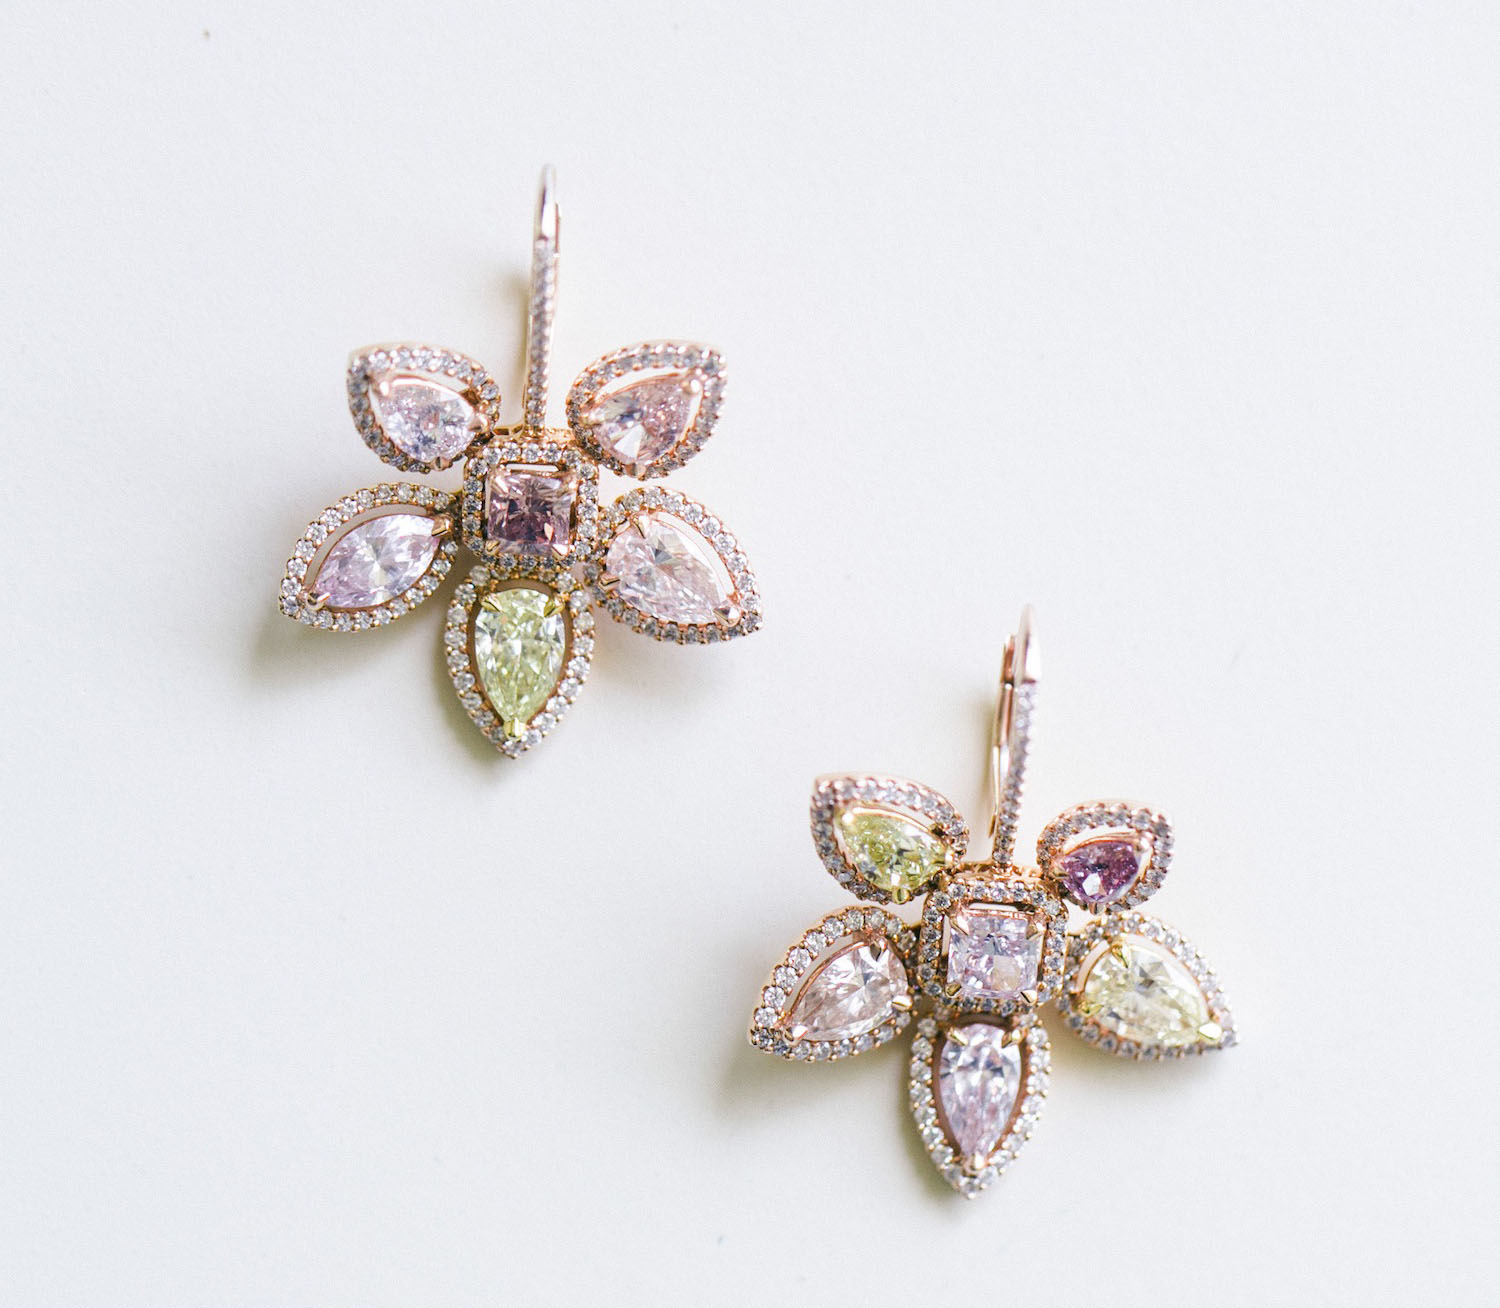 rose gold flower earrings with pale gemstones